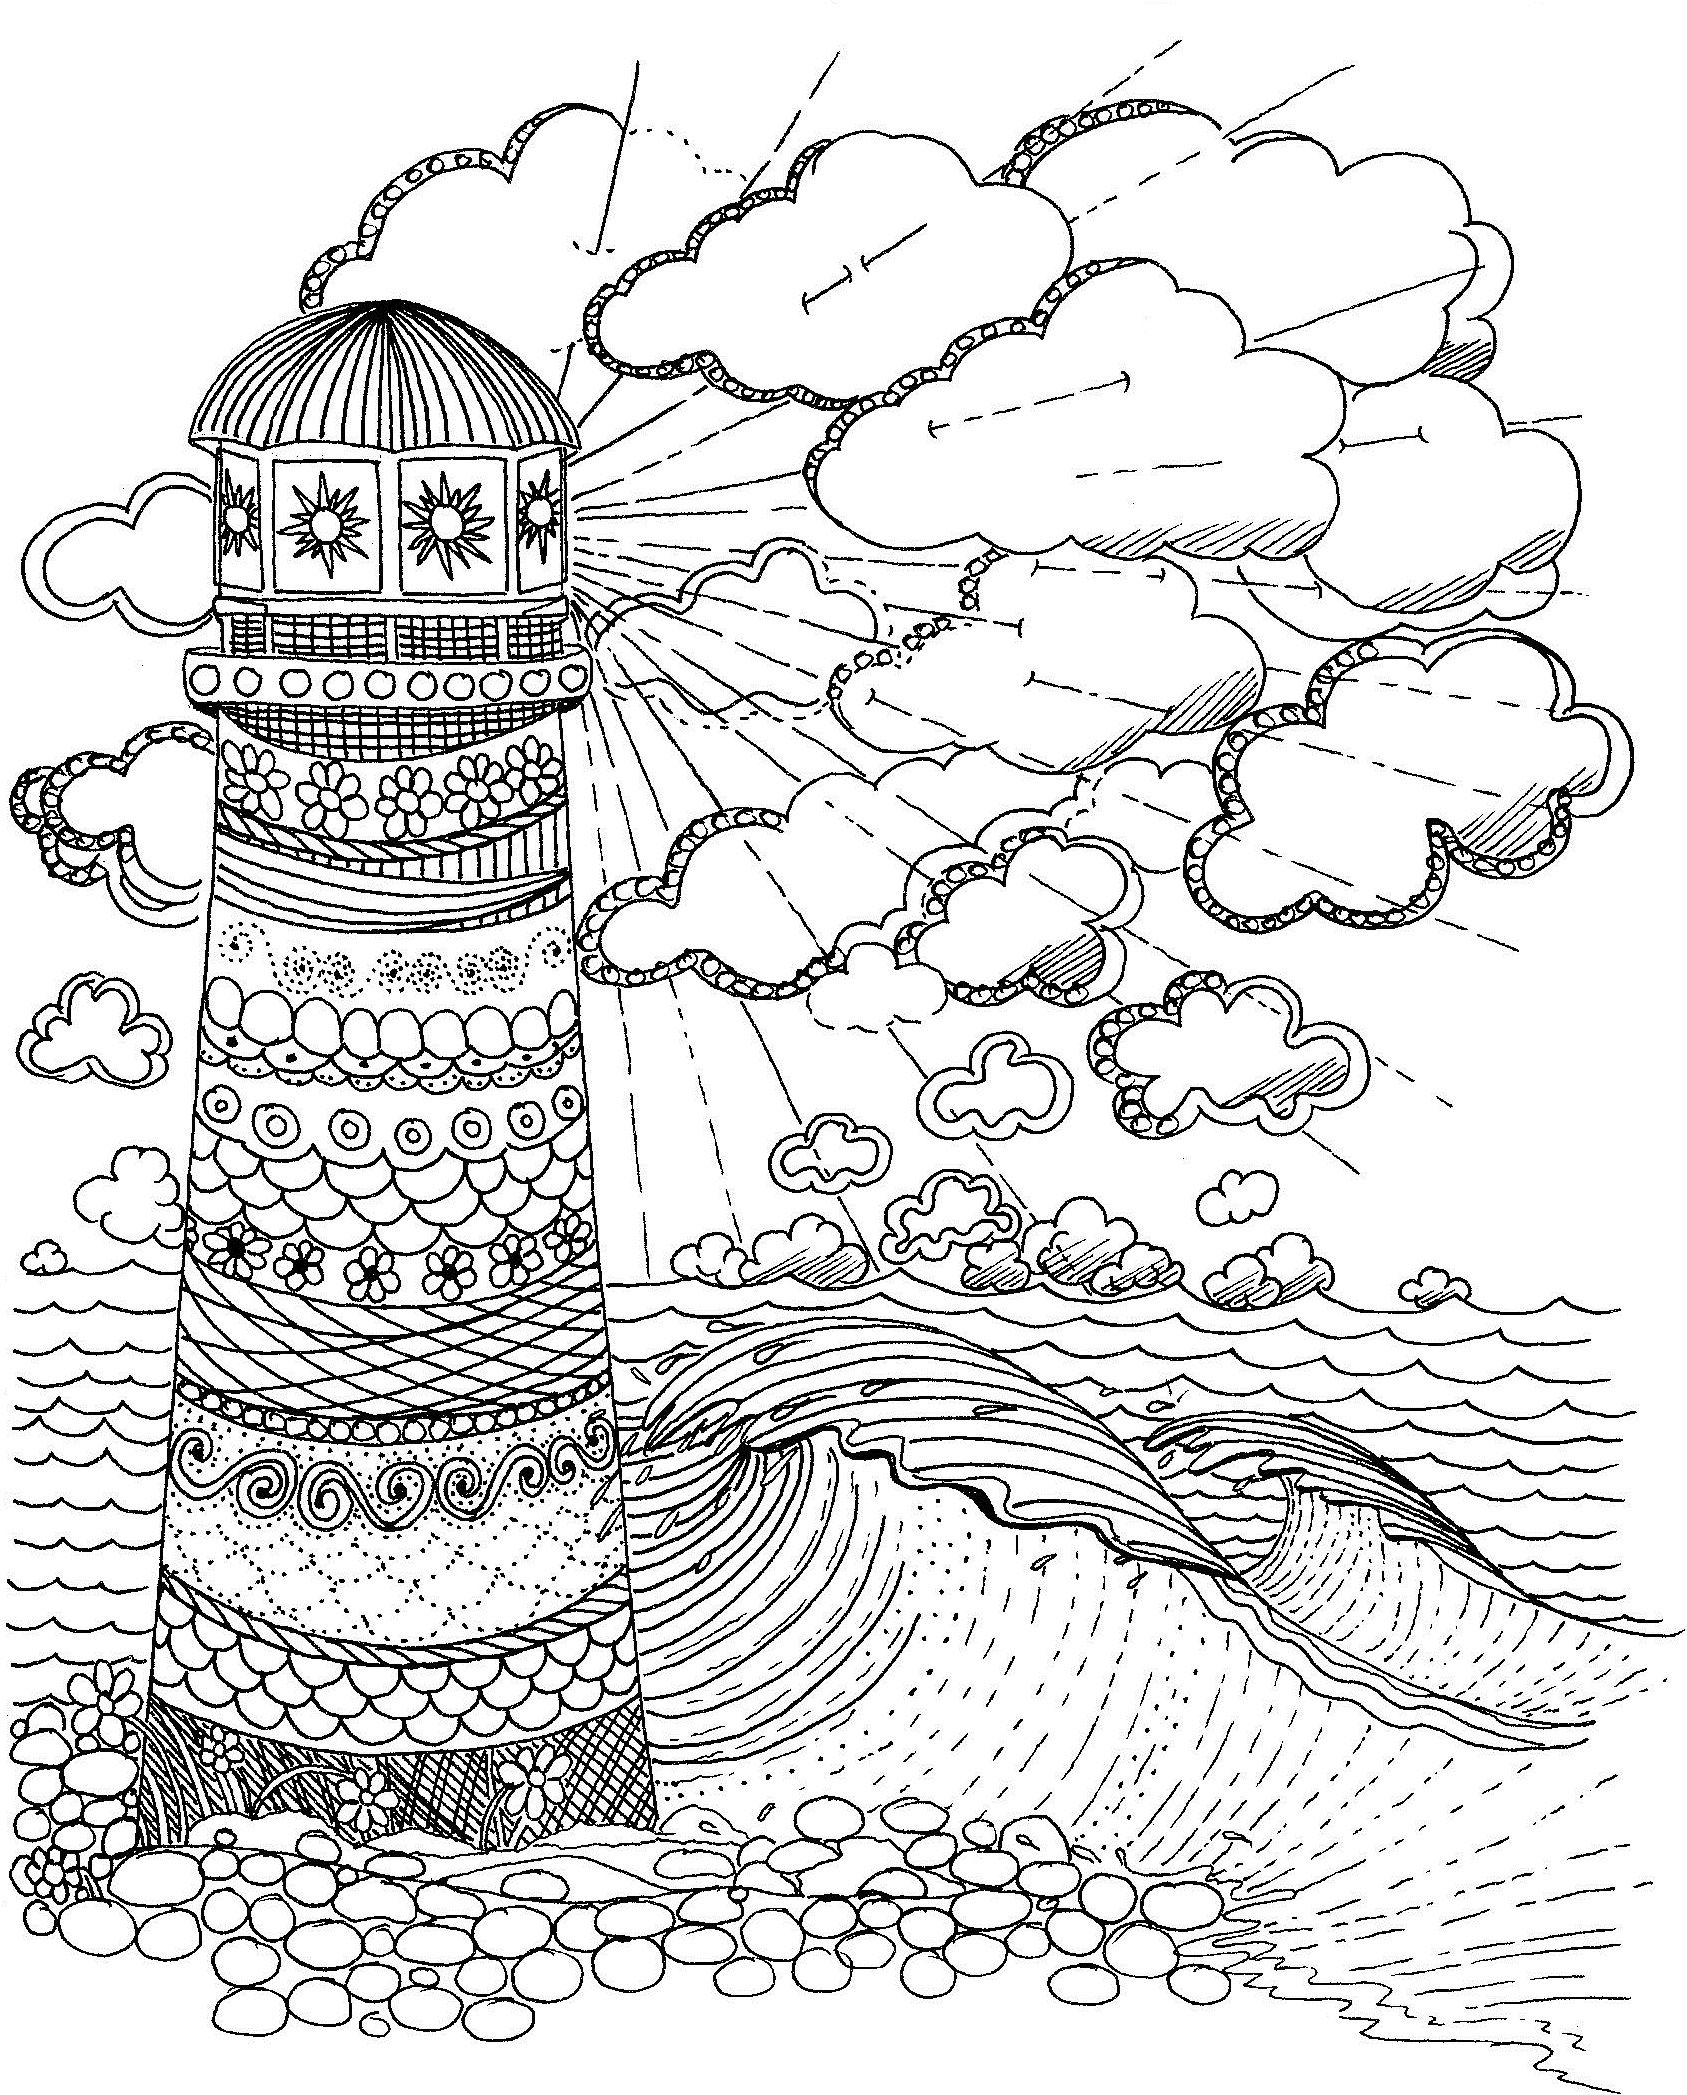 I havent colored the lighthouse yet so i have no colored picture to show you you will have to use your own imagination on this one and im sure you can